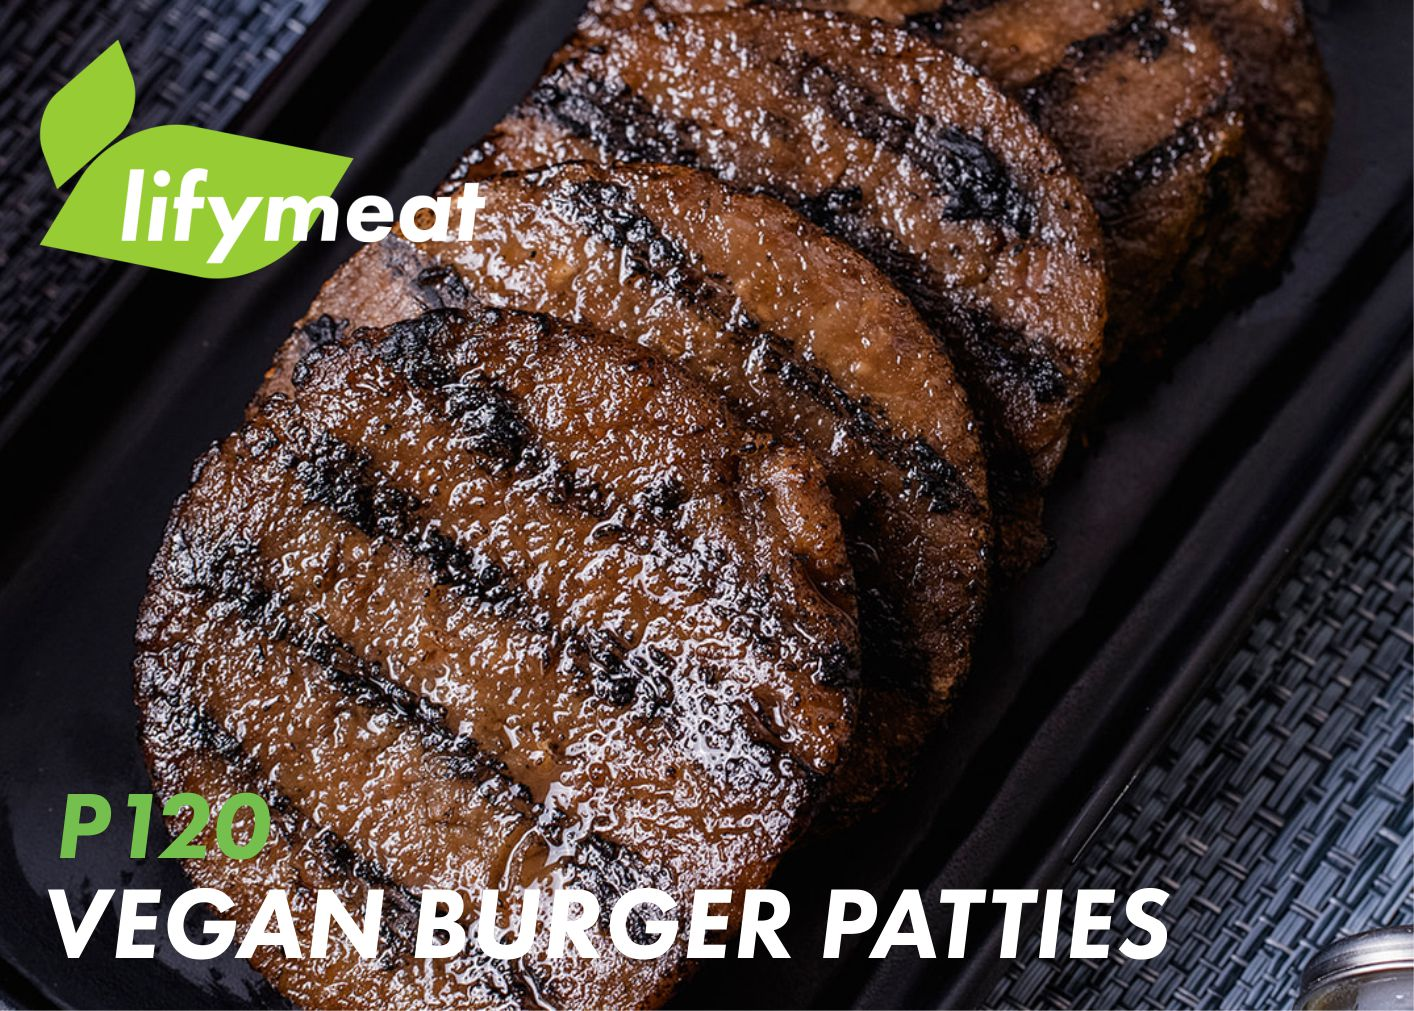 Vegan Burger Patty